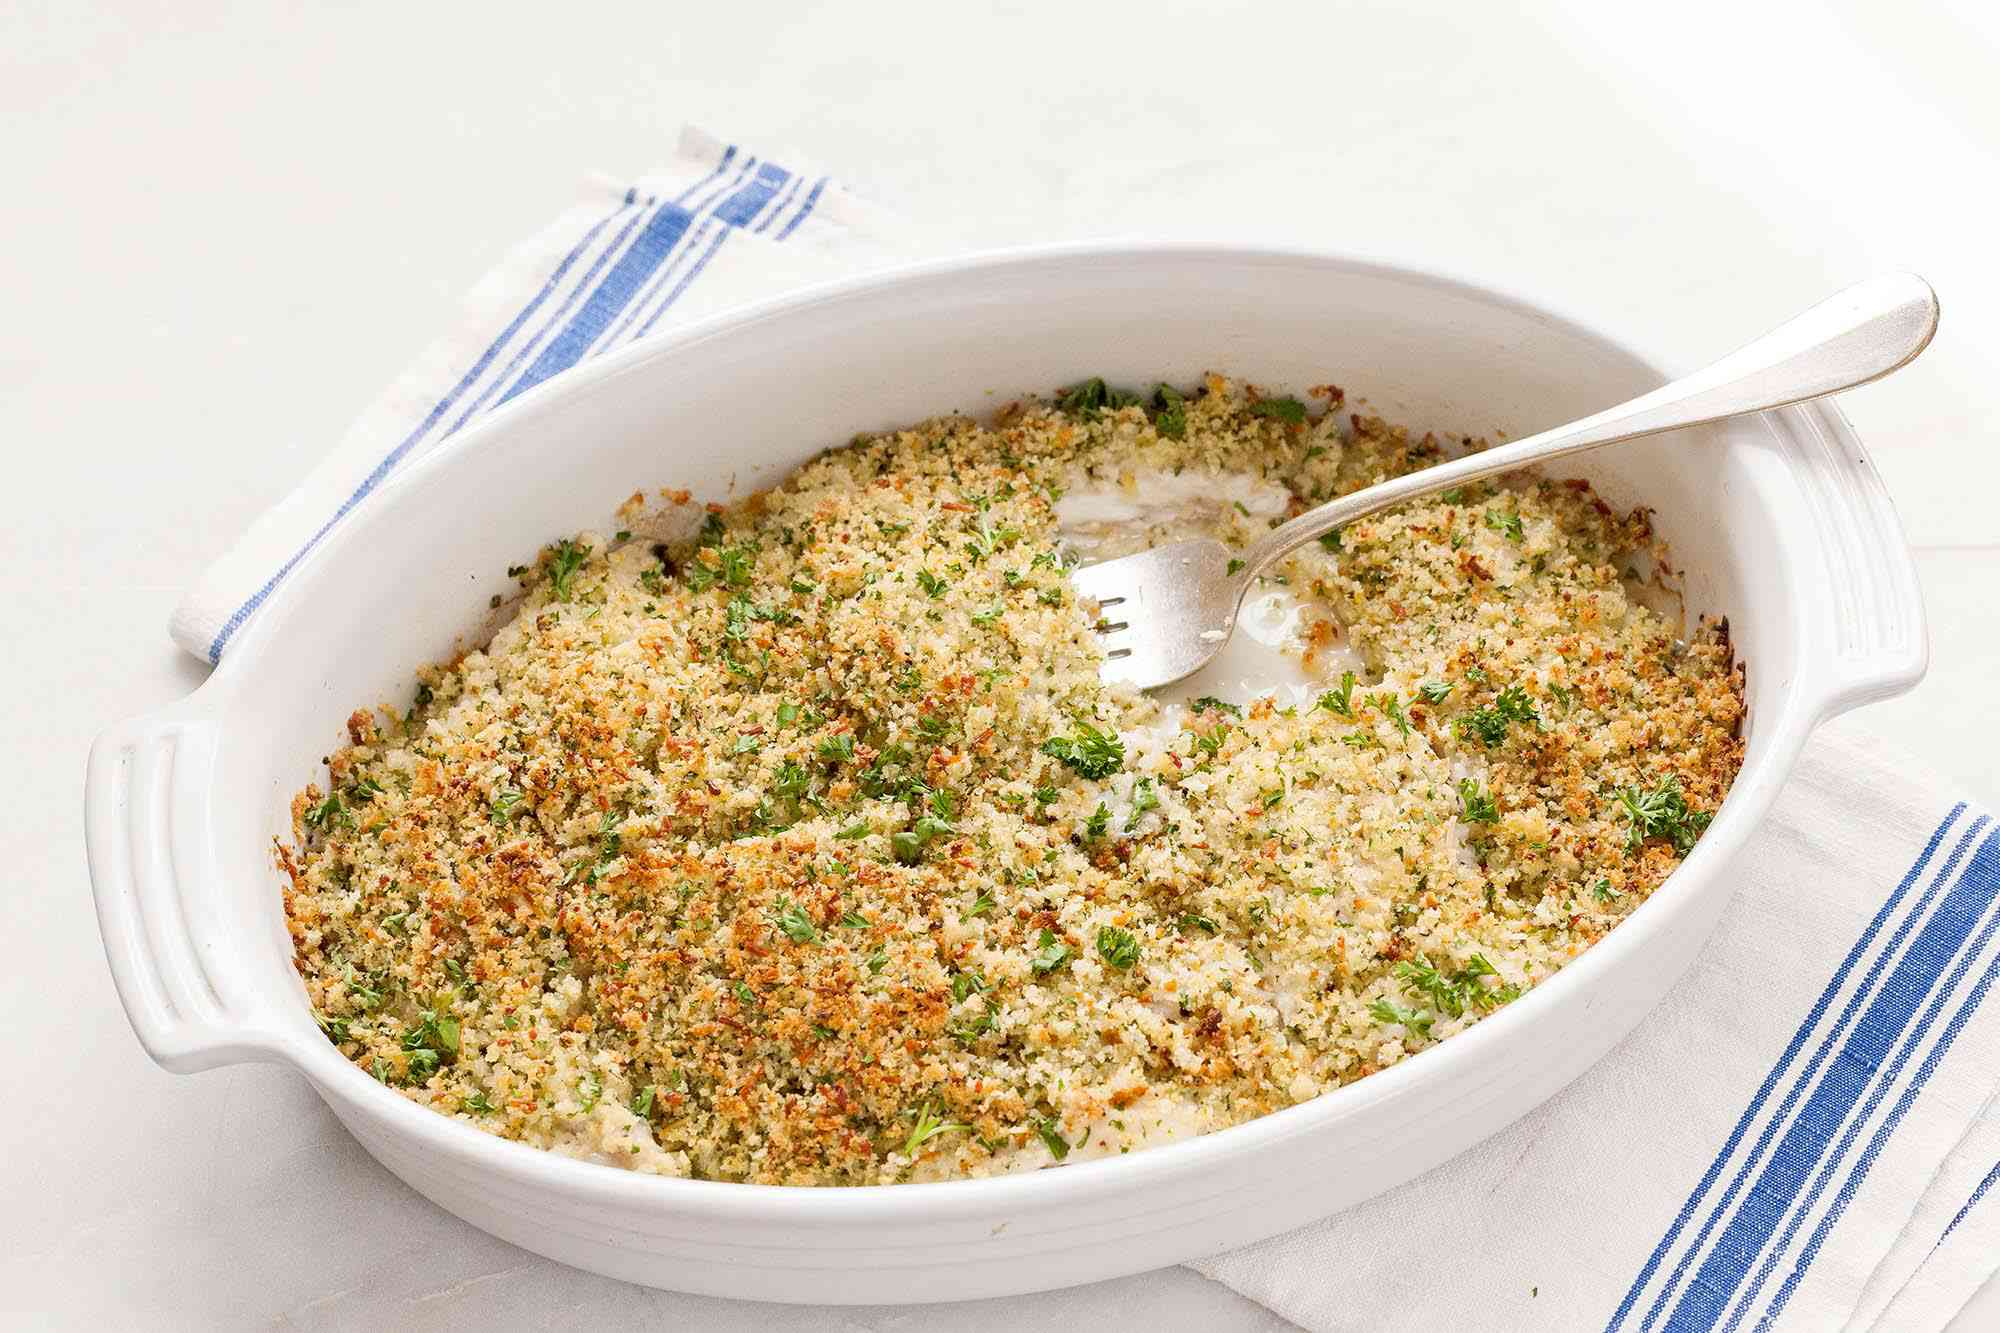 Baked Fish with Parmesan Breadcrumbs